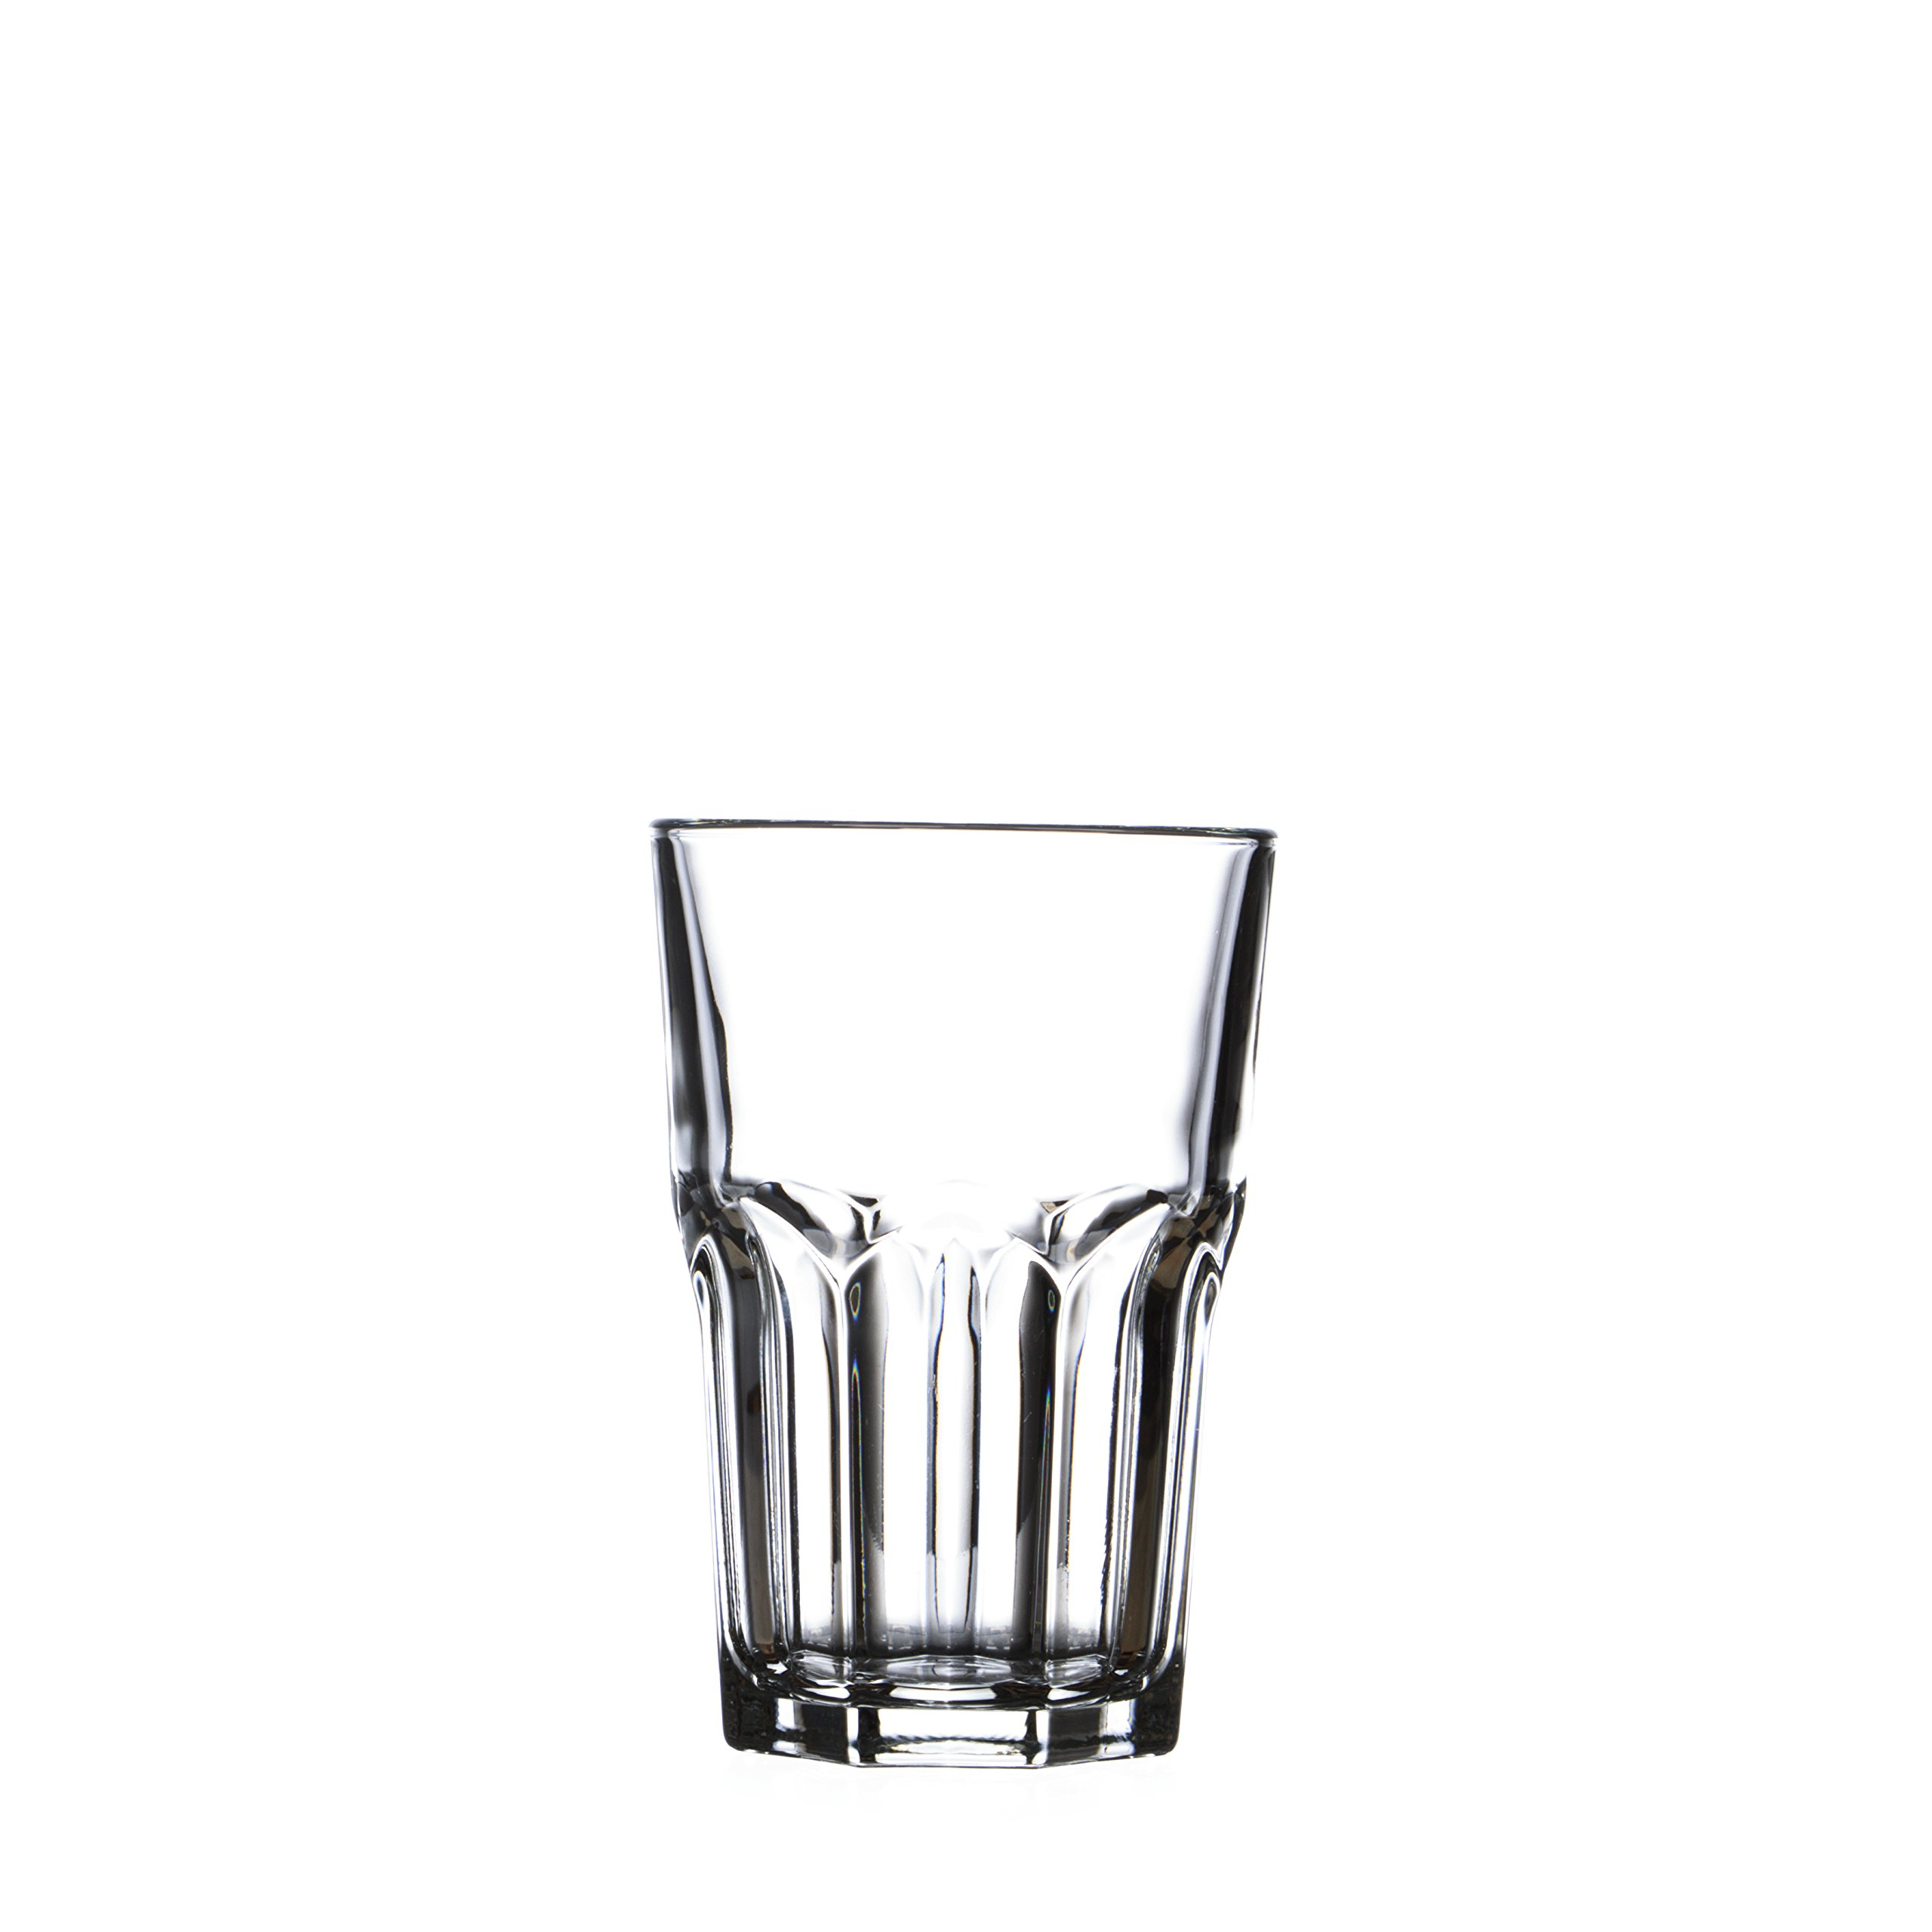 GRANITY Water/Beverage HIGHBALL Glasses Set, ARCOROC, 12 Oz (6)